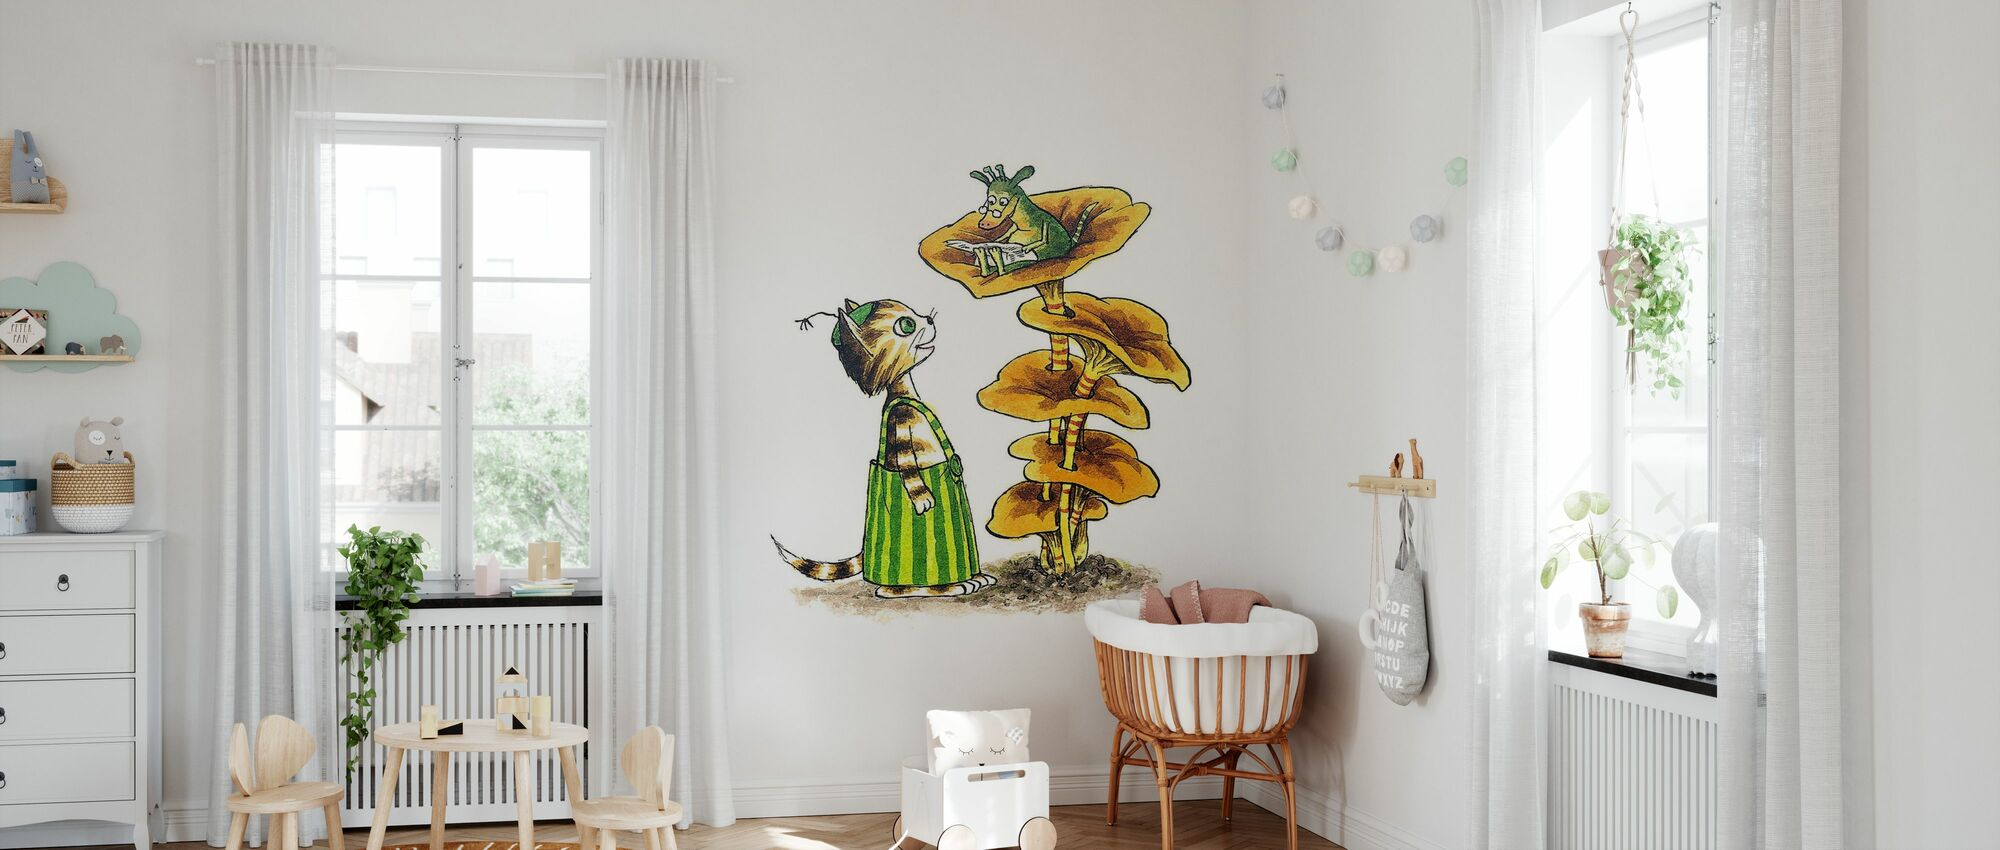 Pettson and Findus - Findus and Mucklan - Wallpaper - Nursery